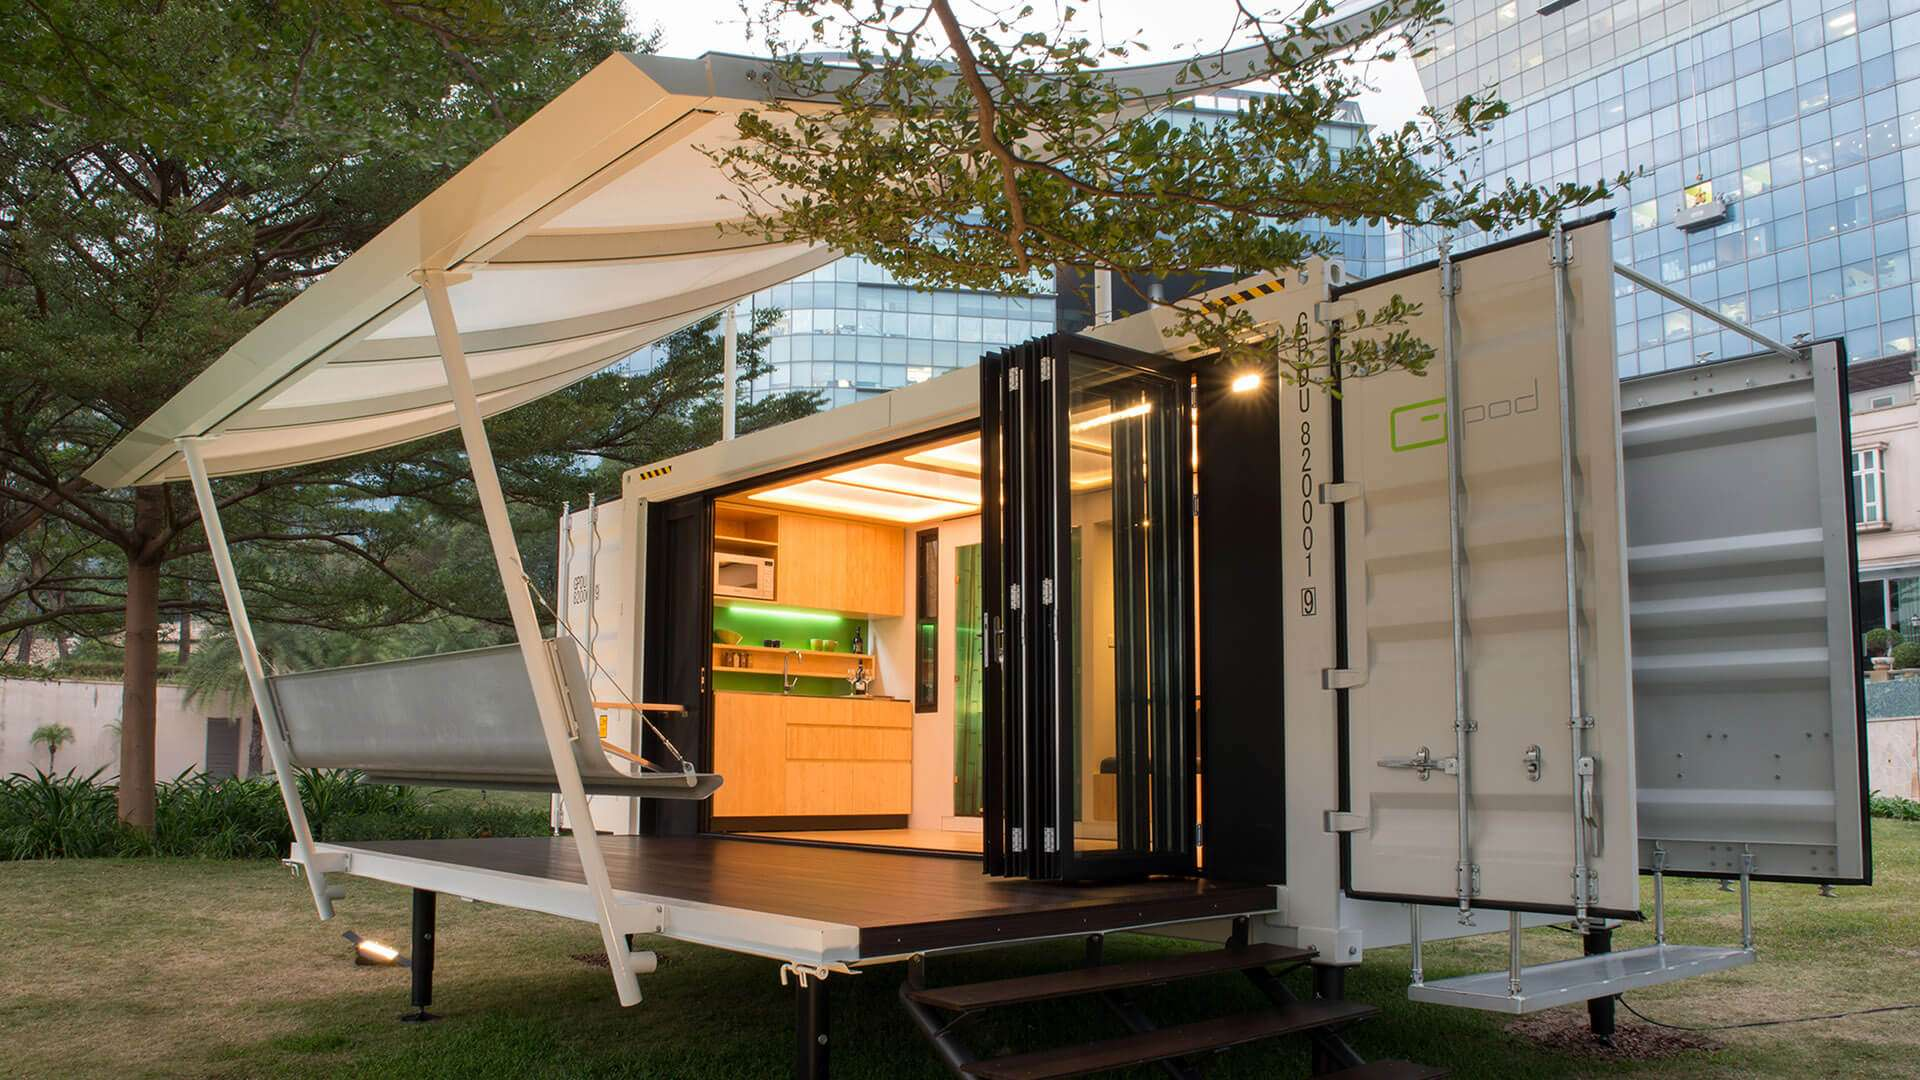 Maison container une maison design en kit modulable et habitable home cont - Amenager un container en maison ...